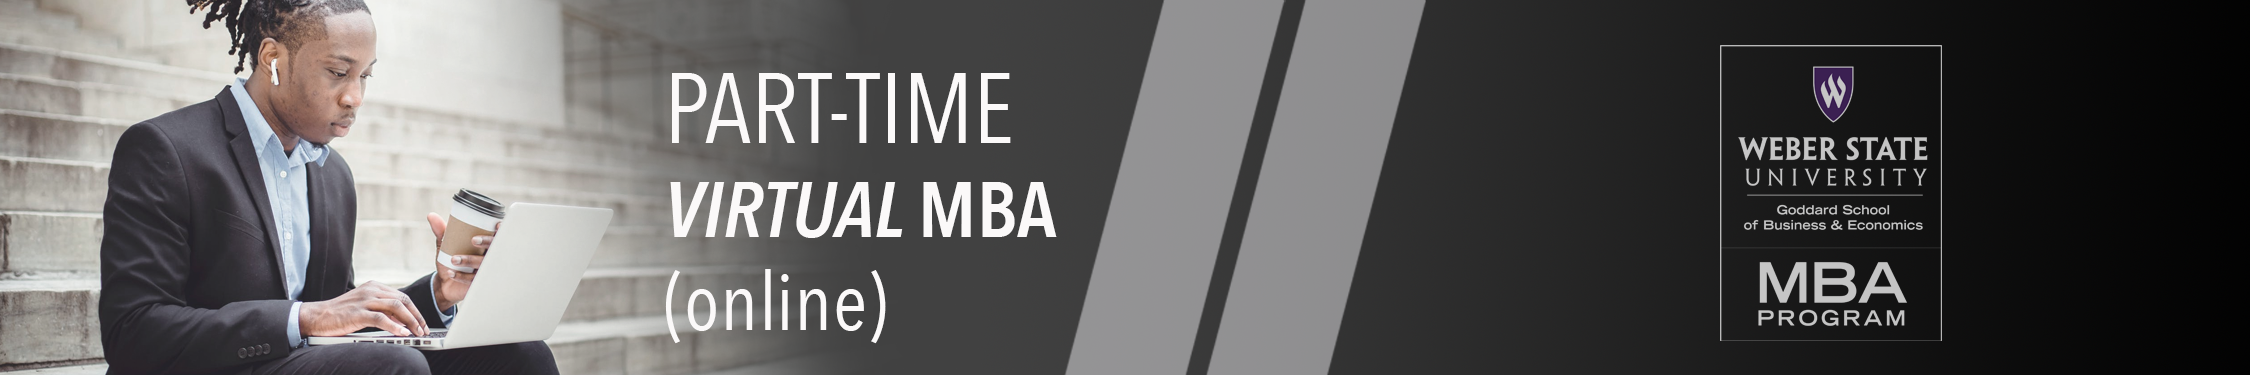 Part-time MBA virtual (online)